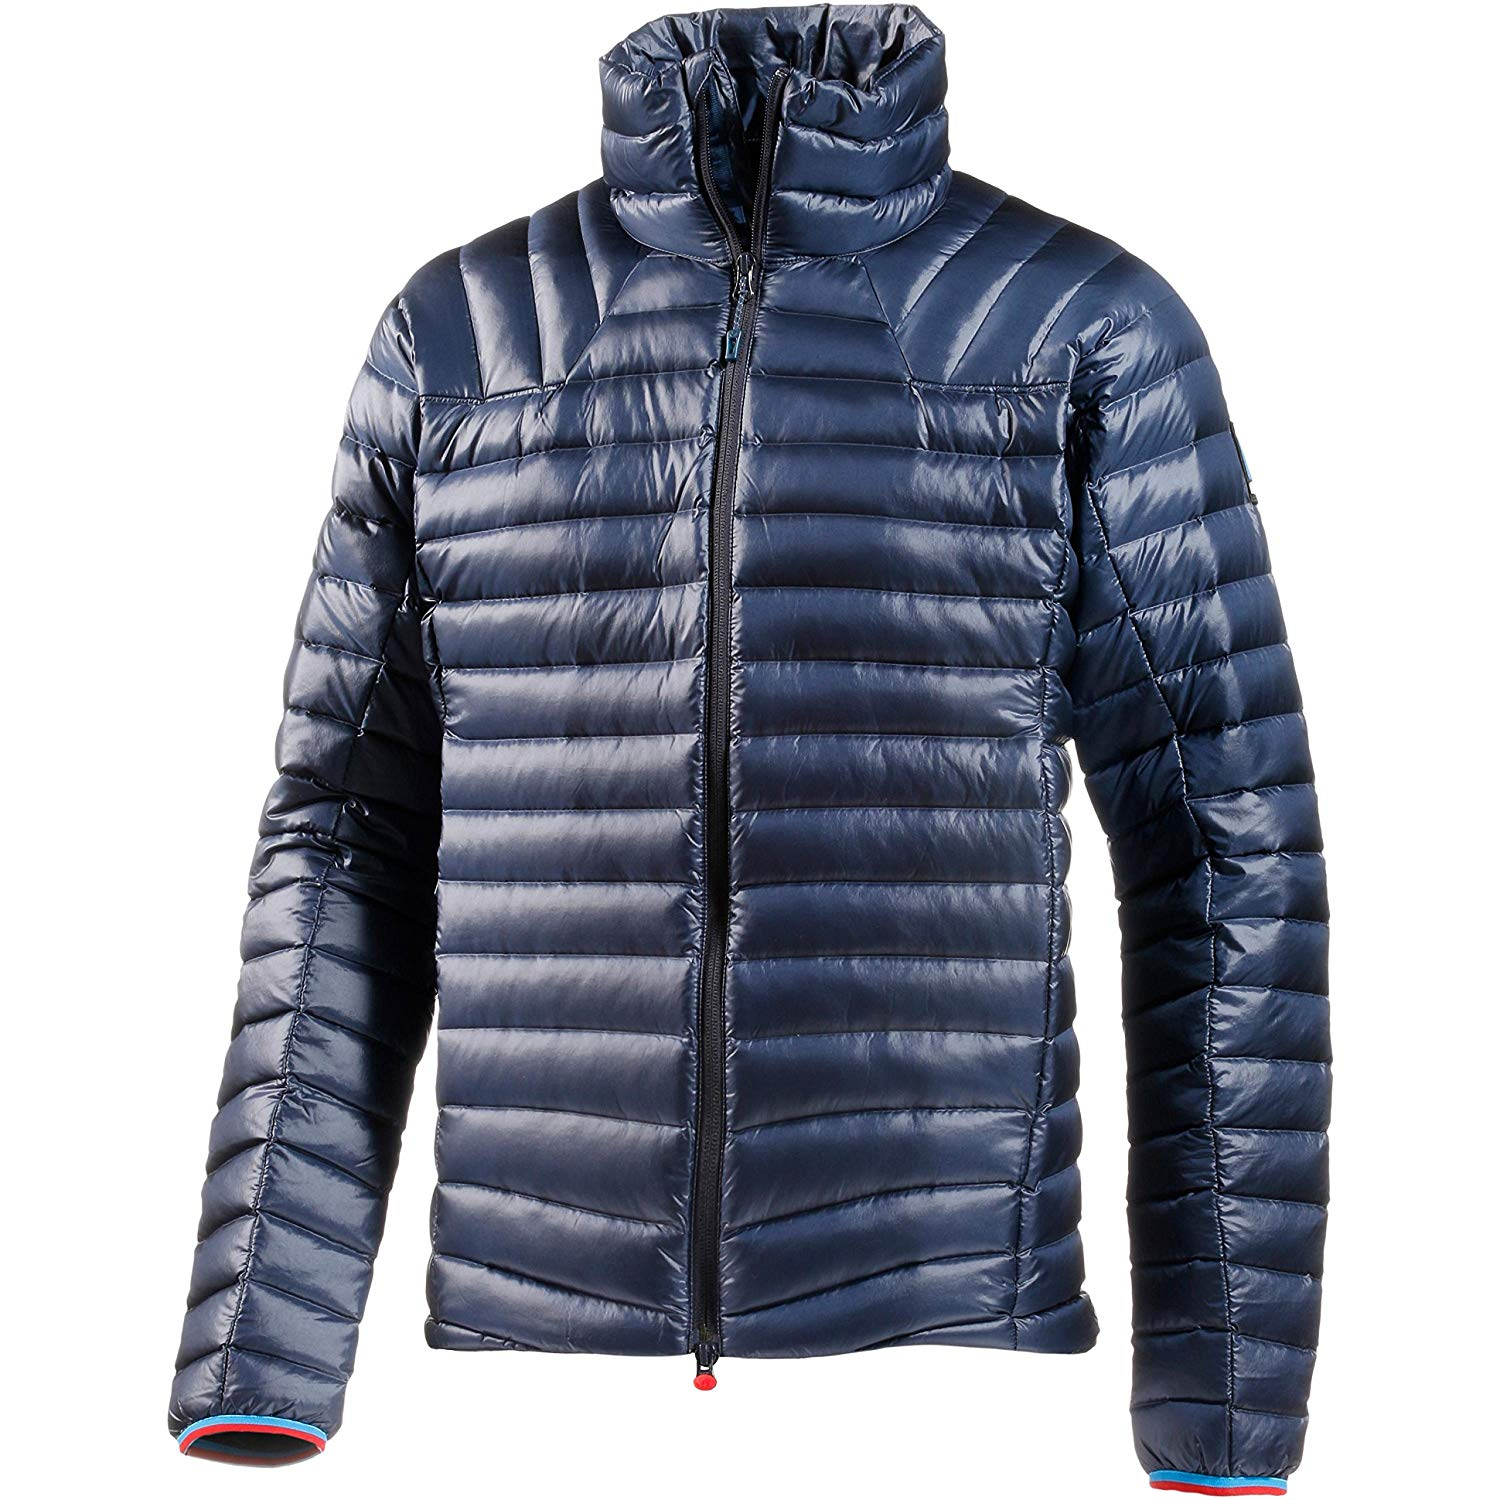 9734c752b6 Get Quotations · Millet Trilogy Synthesis Down Jacket - MIV7031.7317-XL